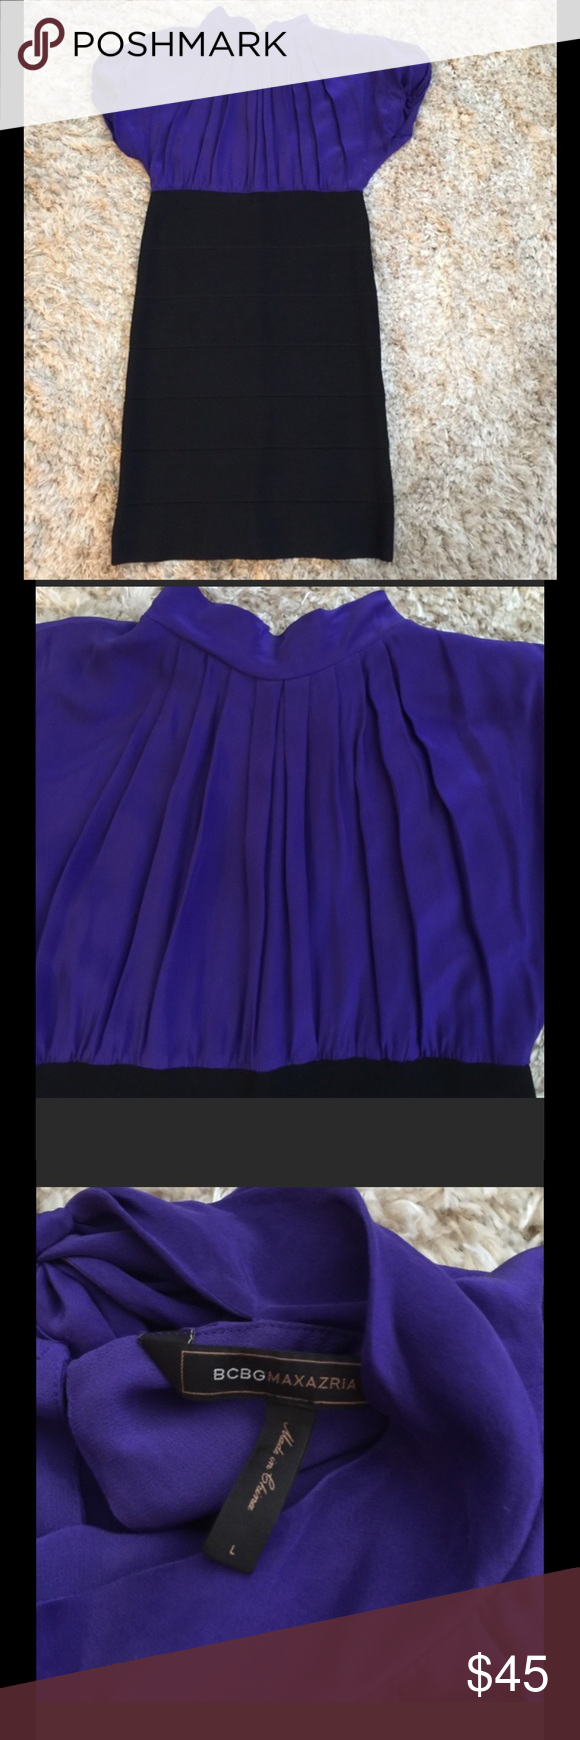 BCBGMaxAziria Blouse Bodycon Dress BCBGMaxAziria  Blouse Bodycon Dress bottom portion is black and top part I say is purple my husband says it's blue. Worn once, in great condition. Very stretchy, can fit 10-14. BCBGMaxAzria Dresses